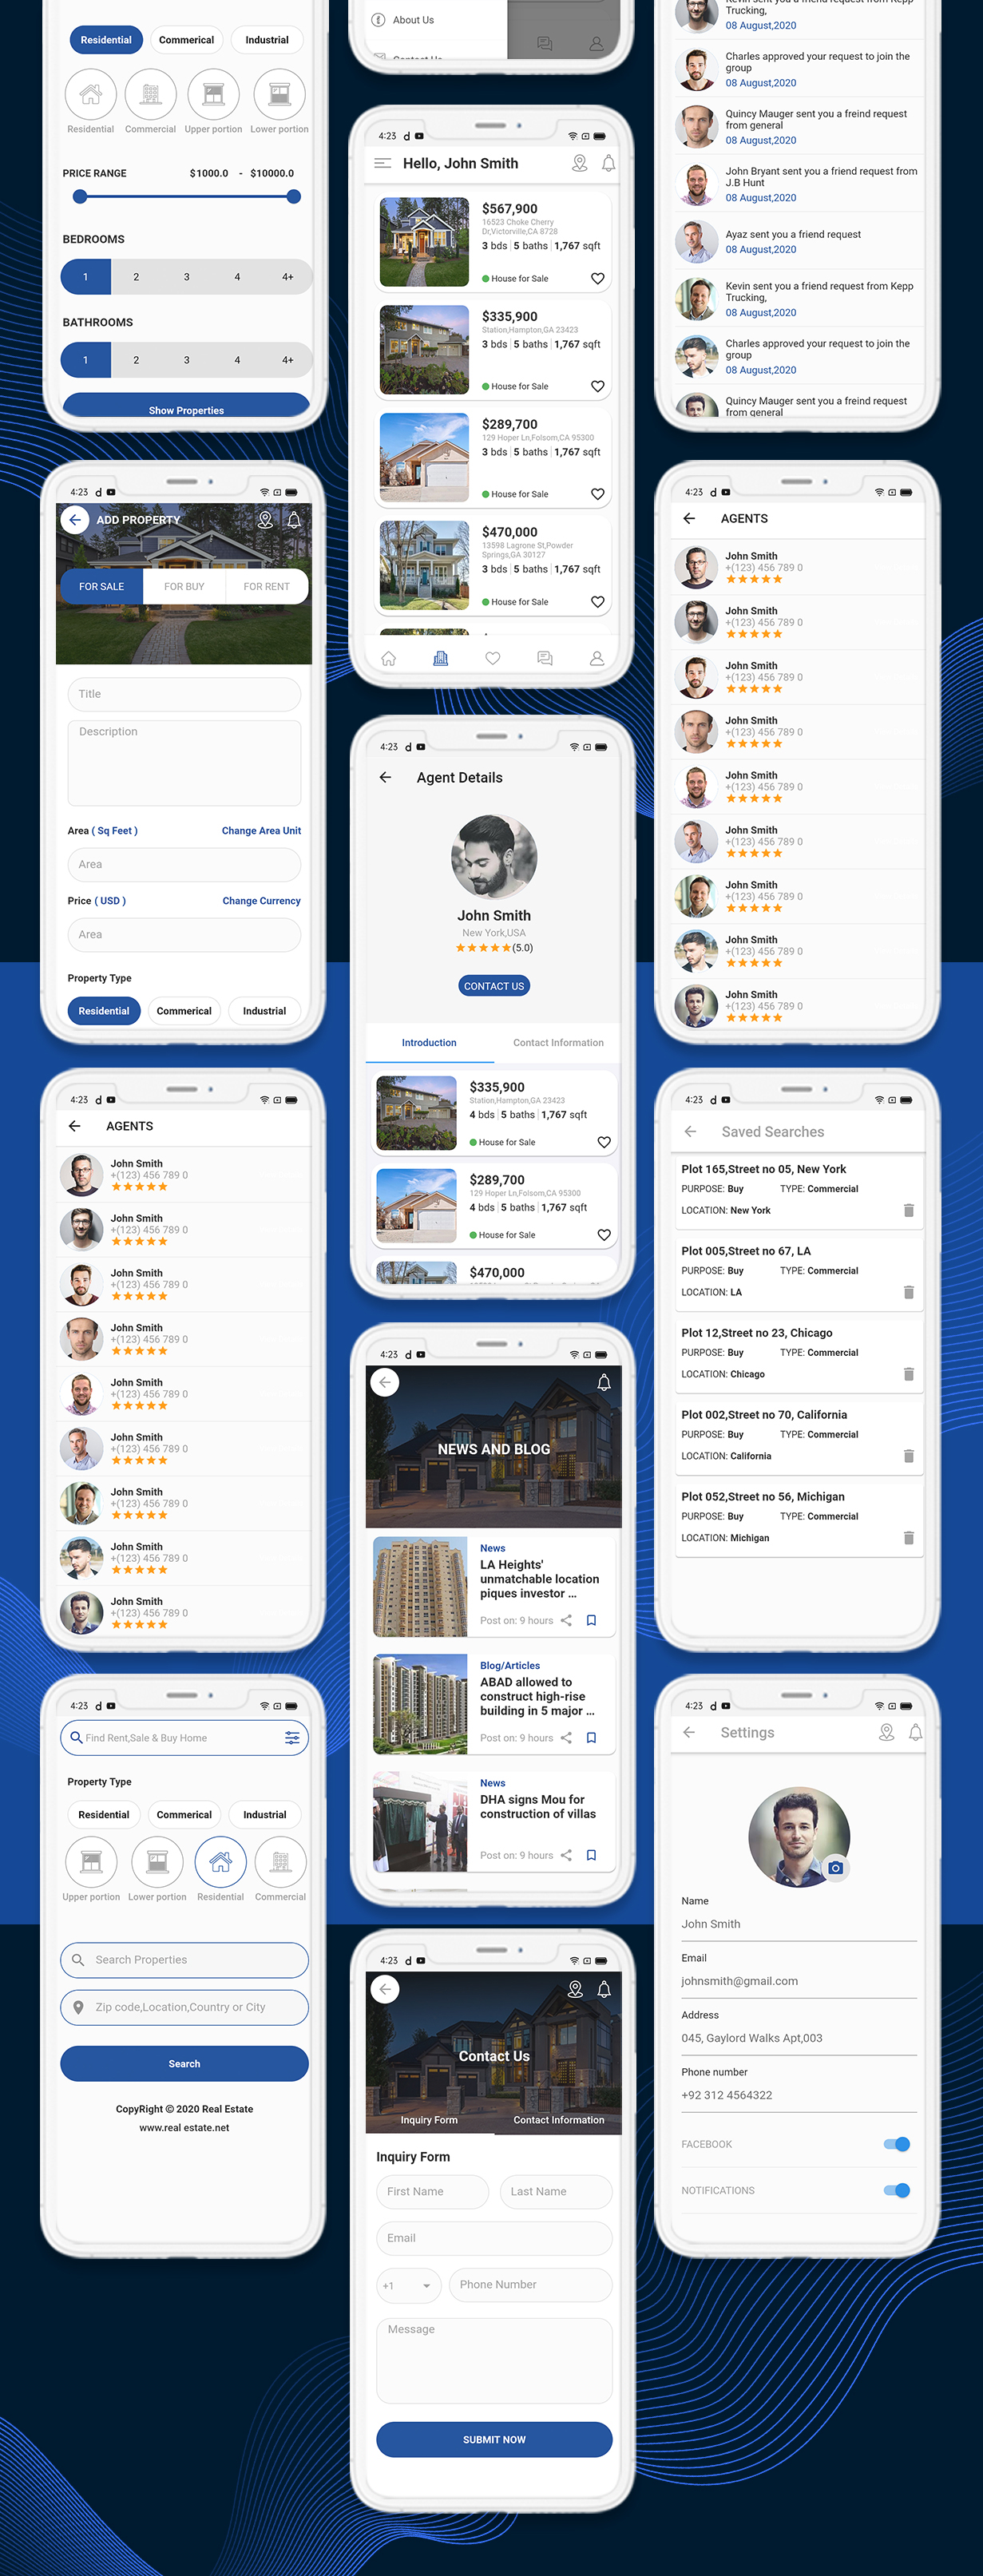 onProperty - Real Estate App Template for Flutter (Android and IOS) - 14